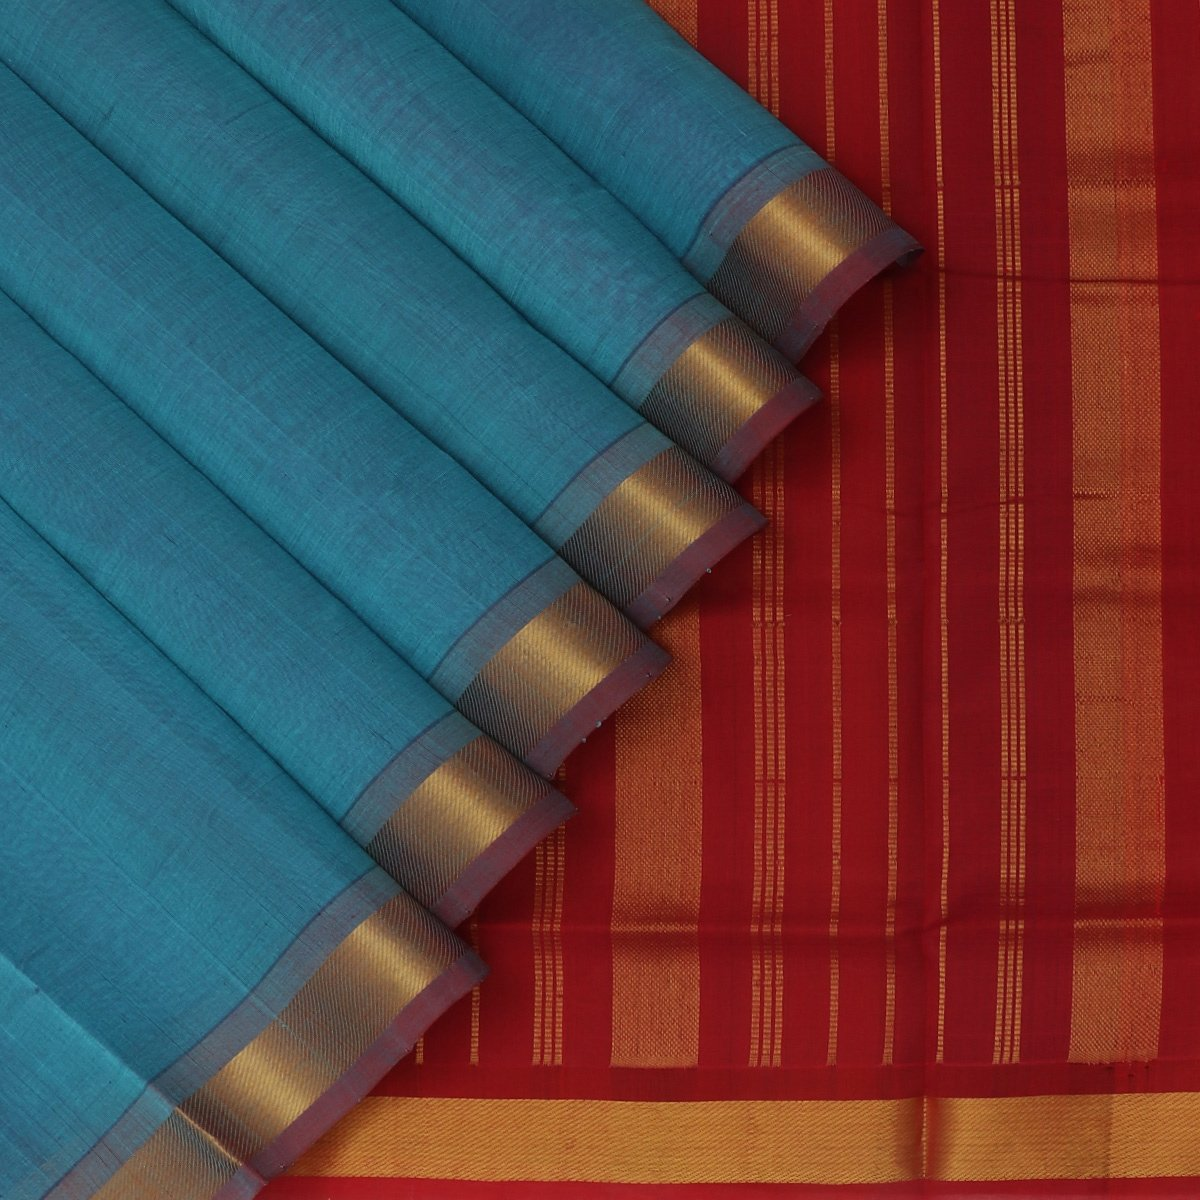 Silk Cotton Saree-Teal blue and Maroon with simple zari border